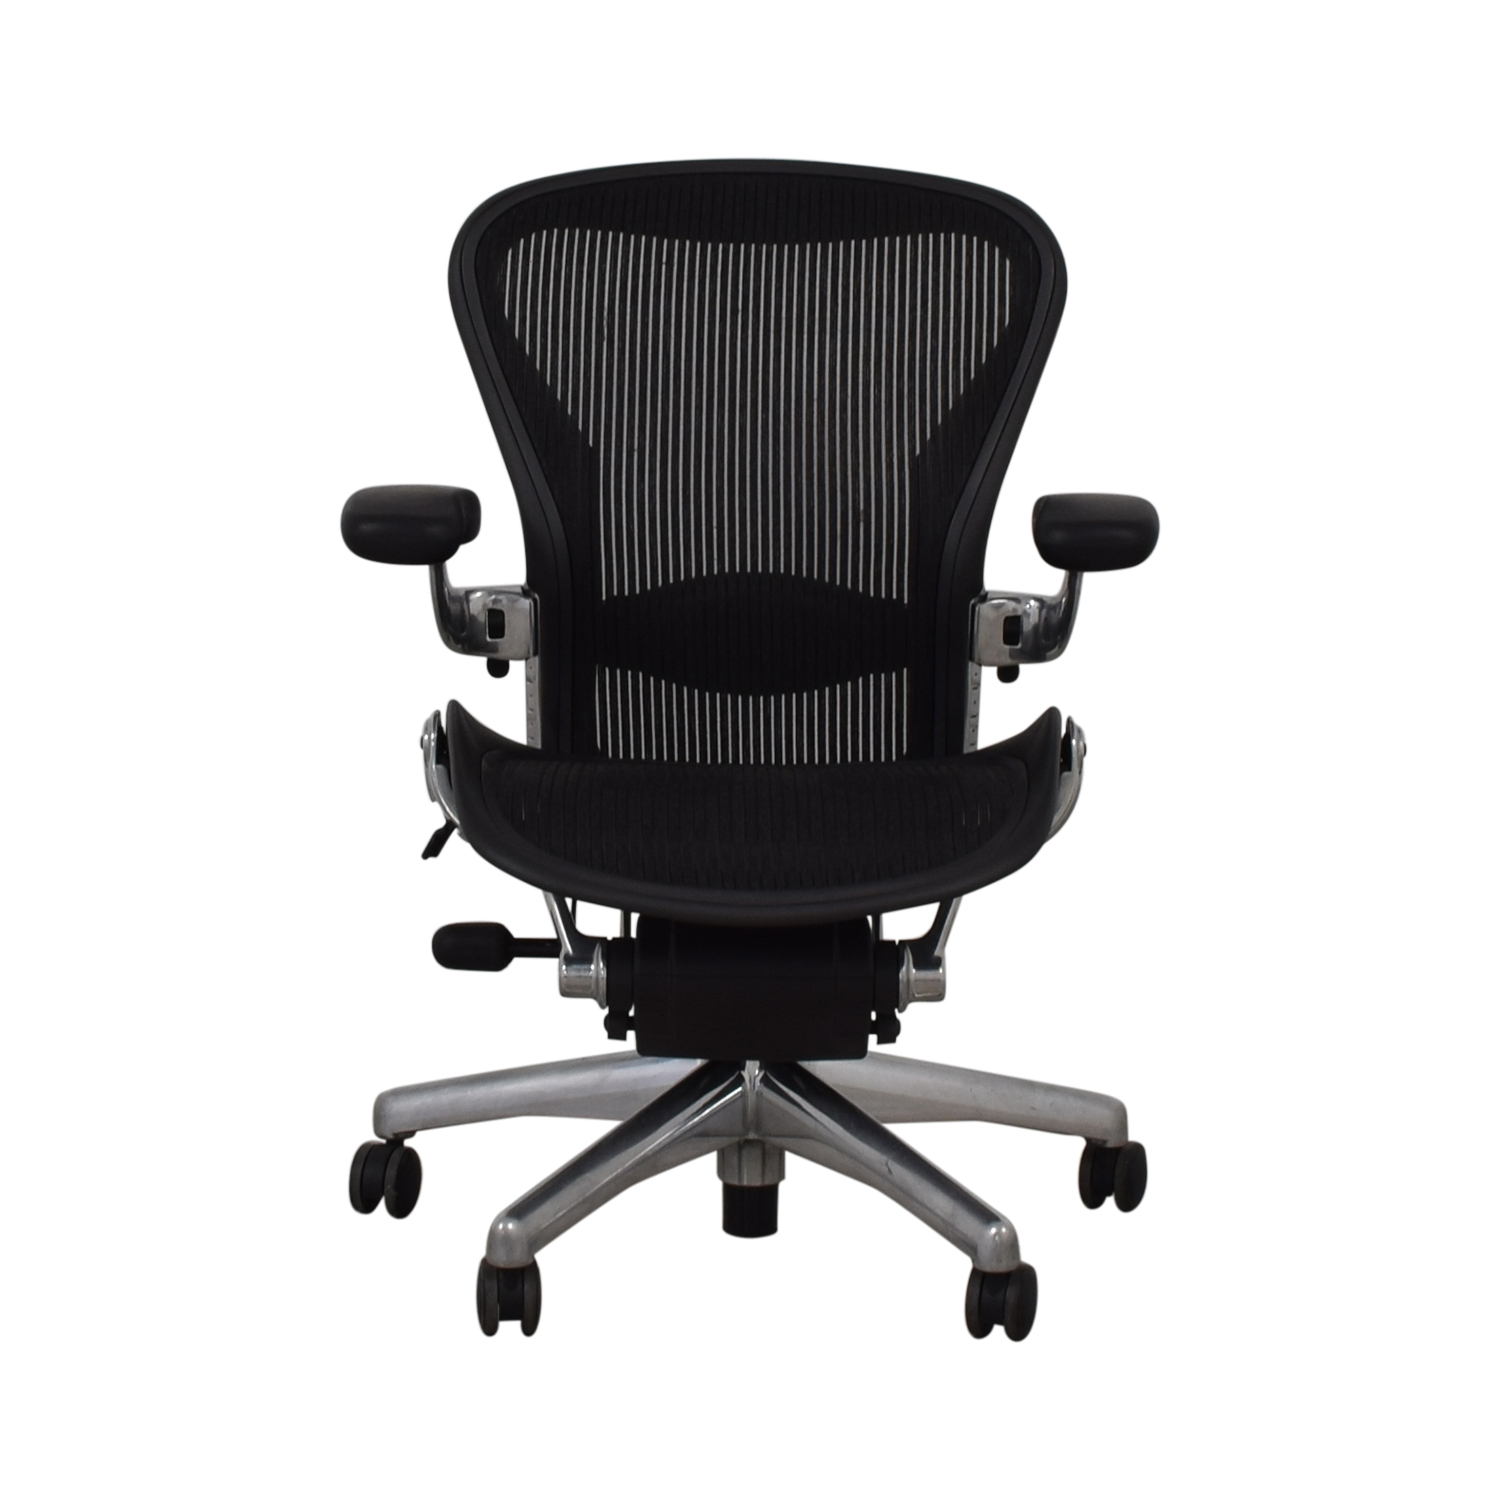 Herman Miller Herman Miller Aeron Size B Black Office Desk Chair black